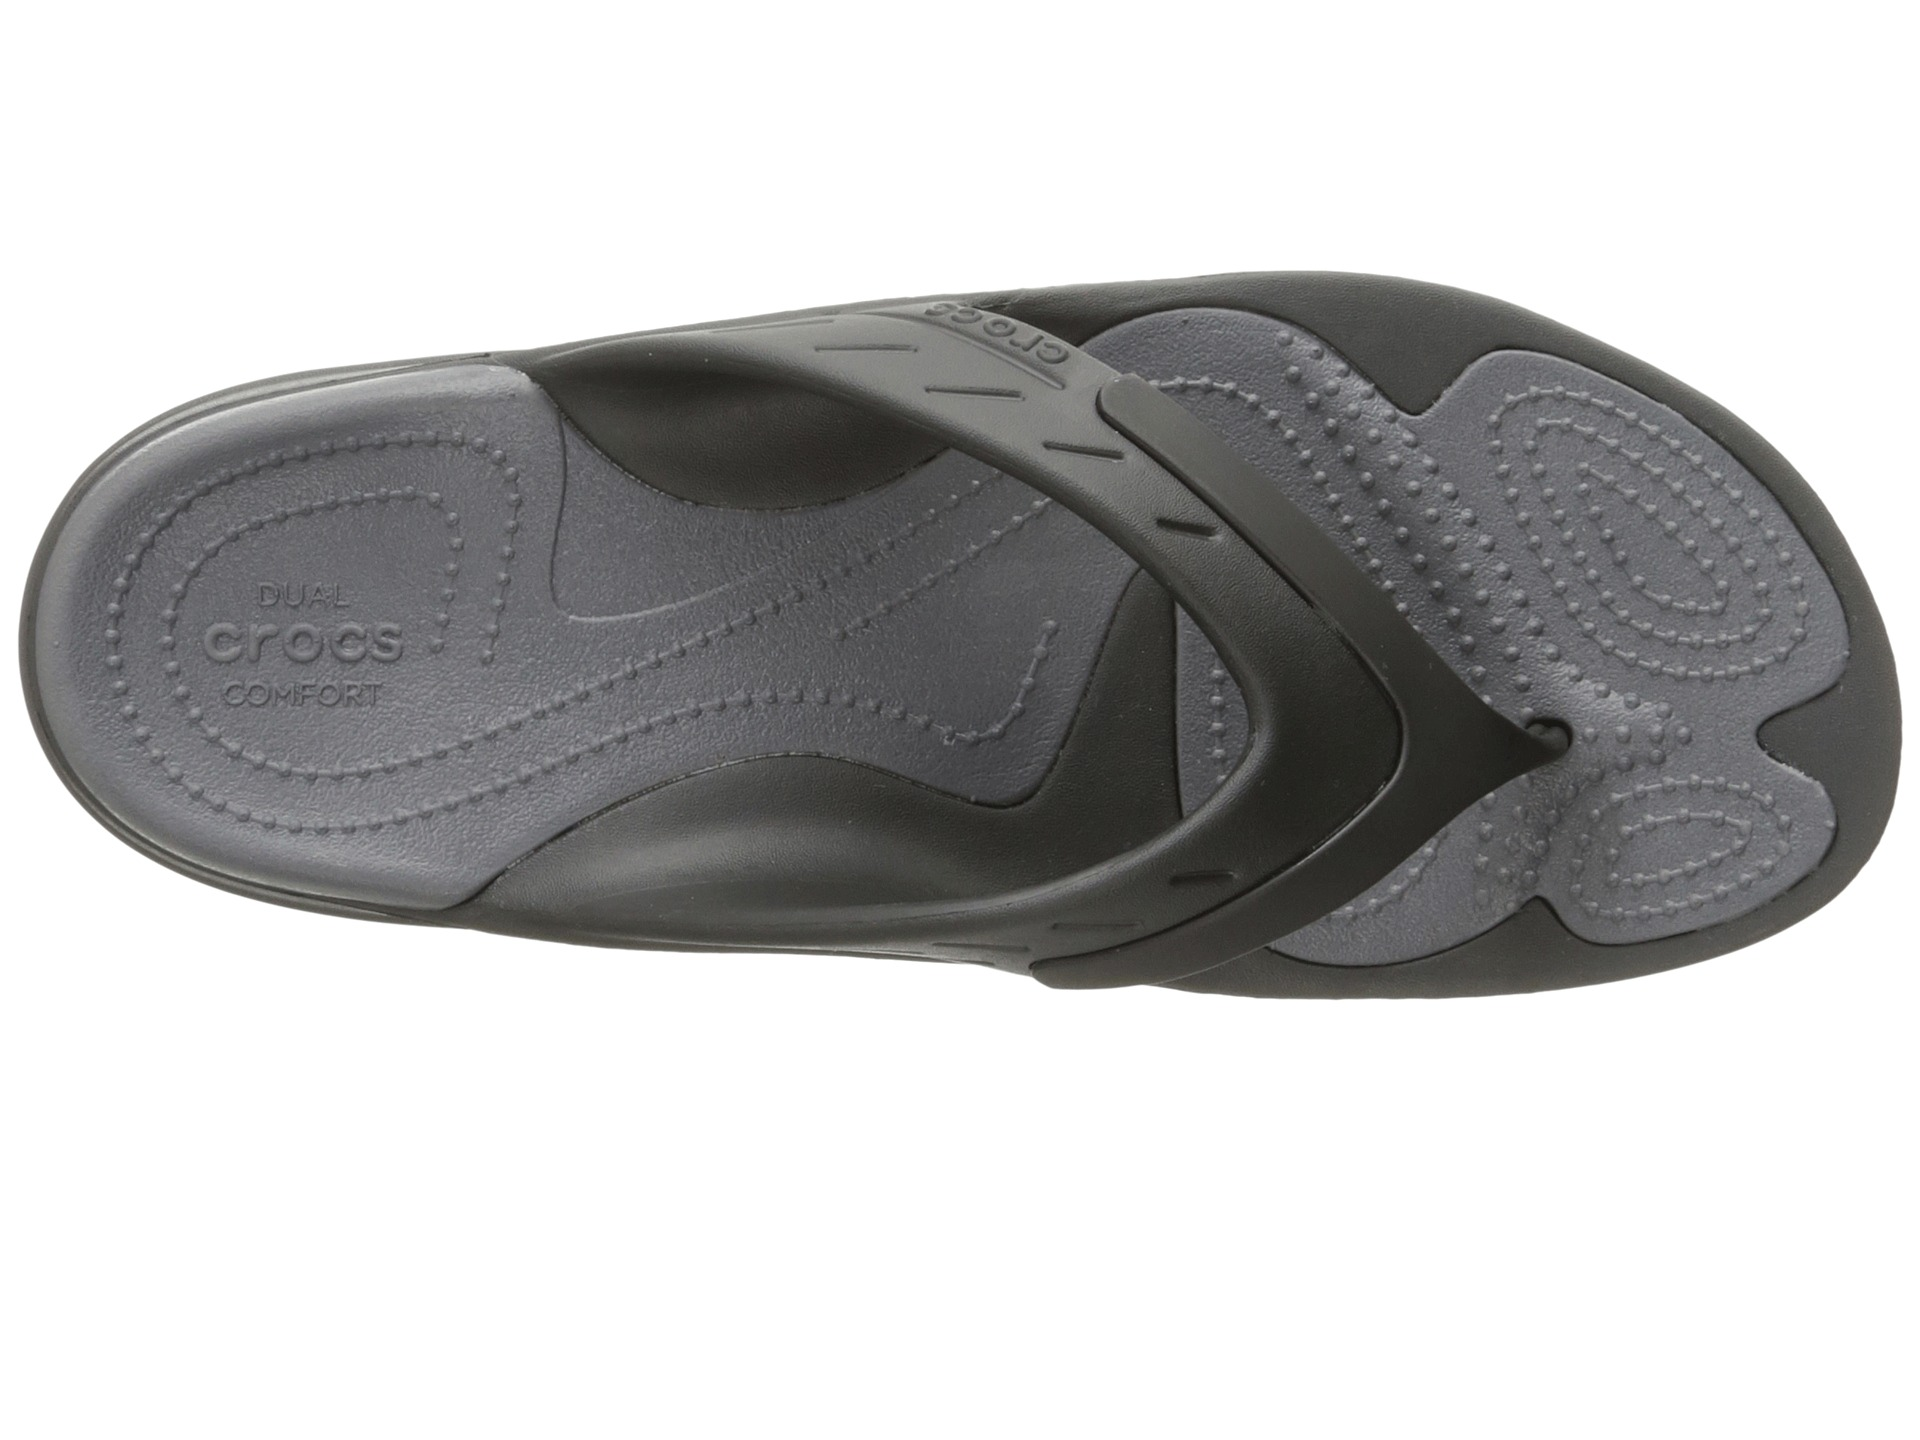 Crocs Modi Flip Flop | Croc Slippers Men | Crocs Flip Flops Mens